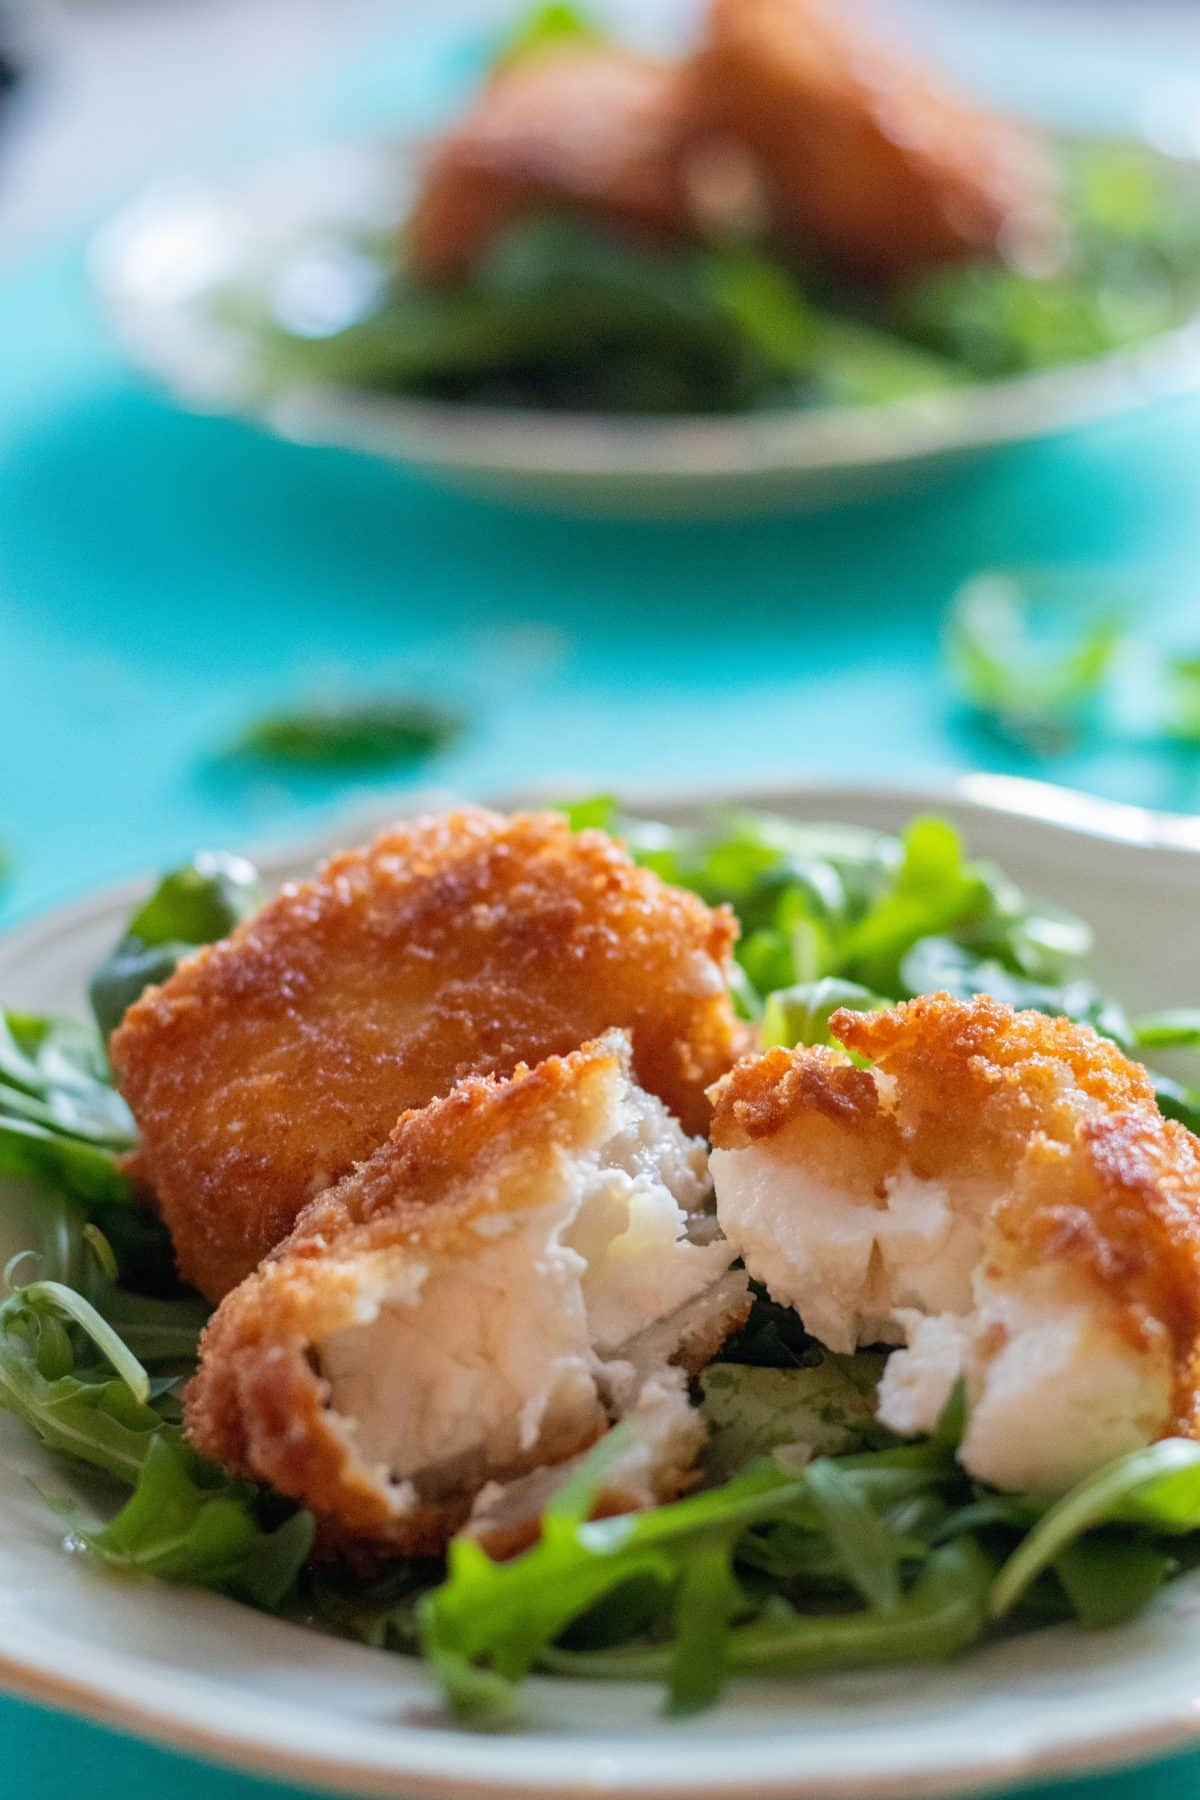 panko breaded feta cheese on a bed of greens with one breaded cheese split open